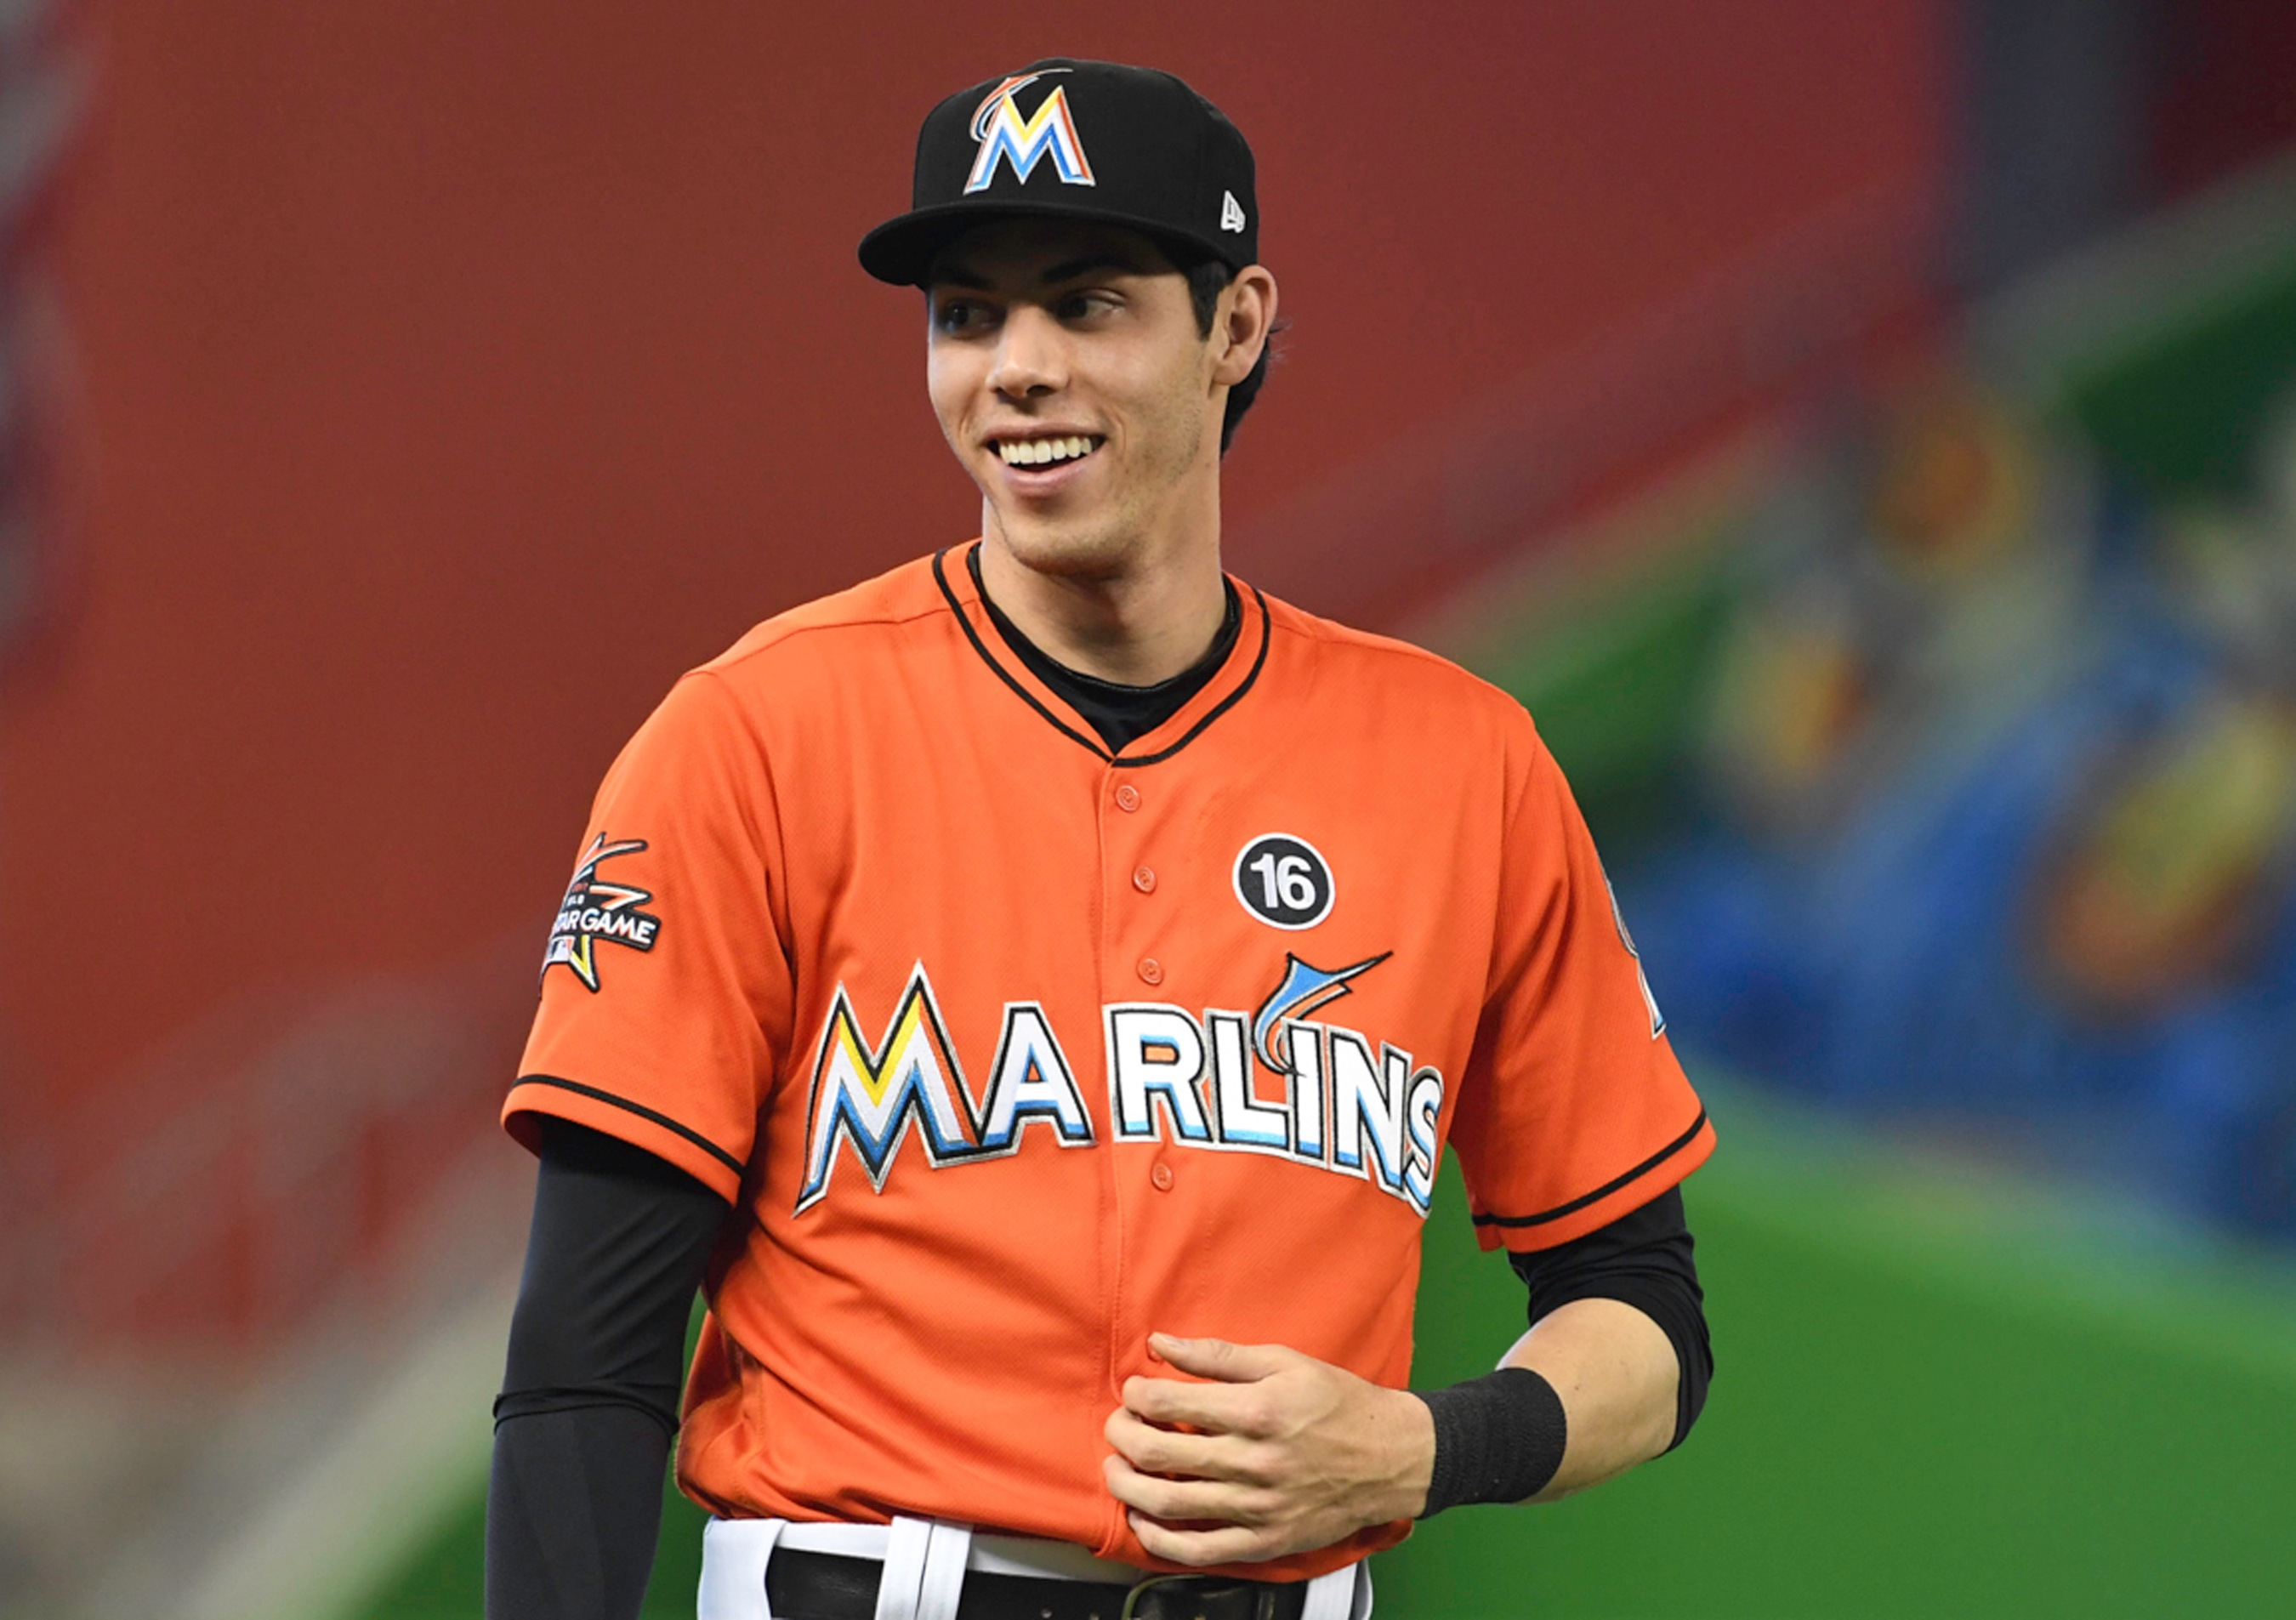 Christian_yelich_marlins_ronelkmangetty